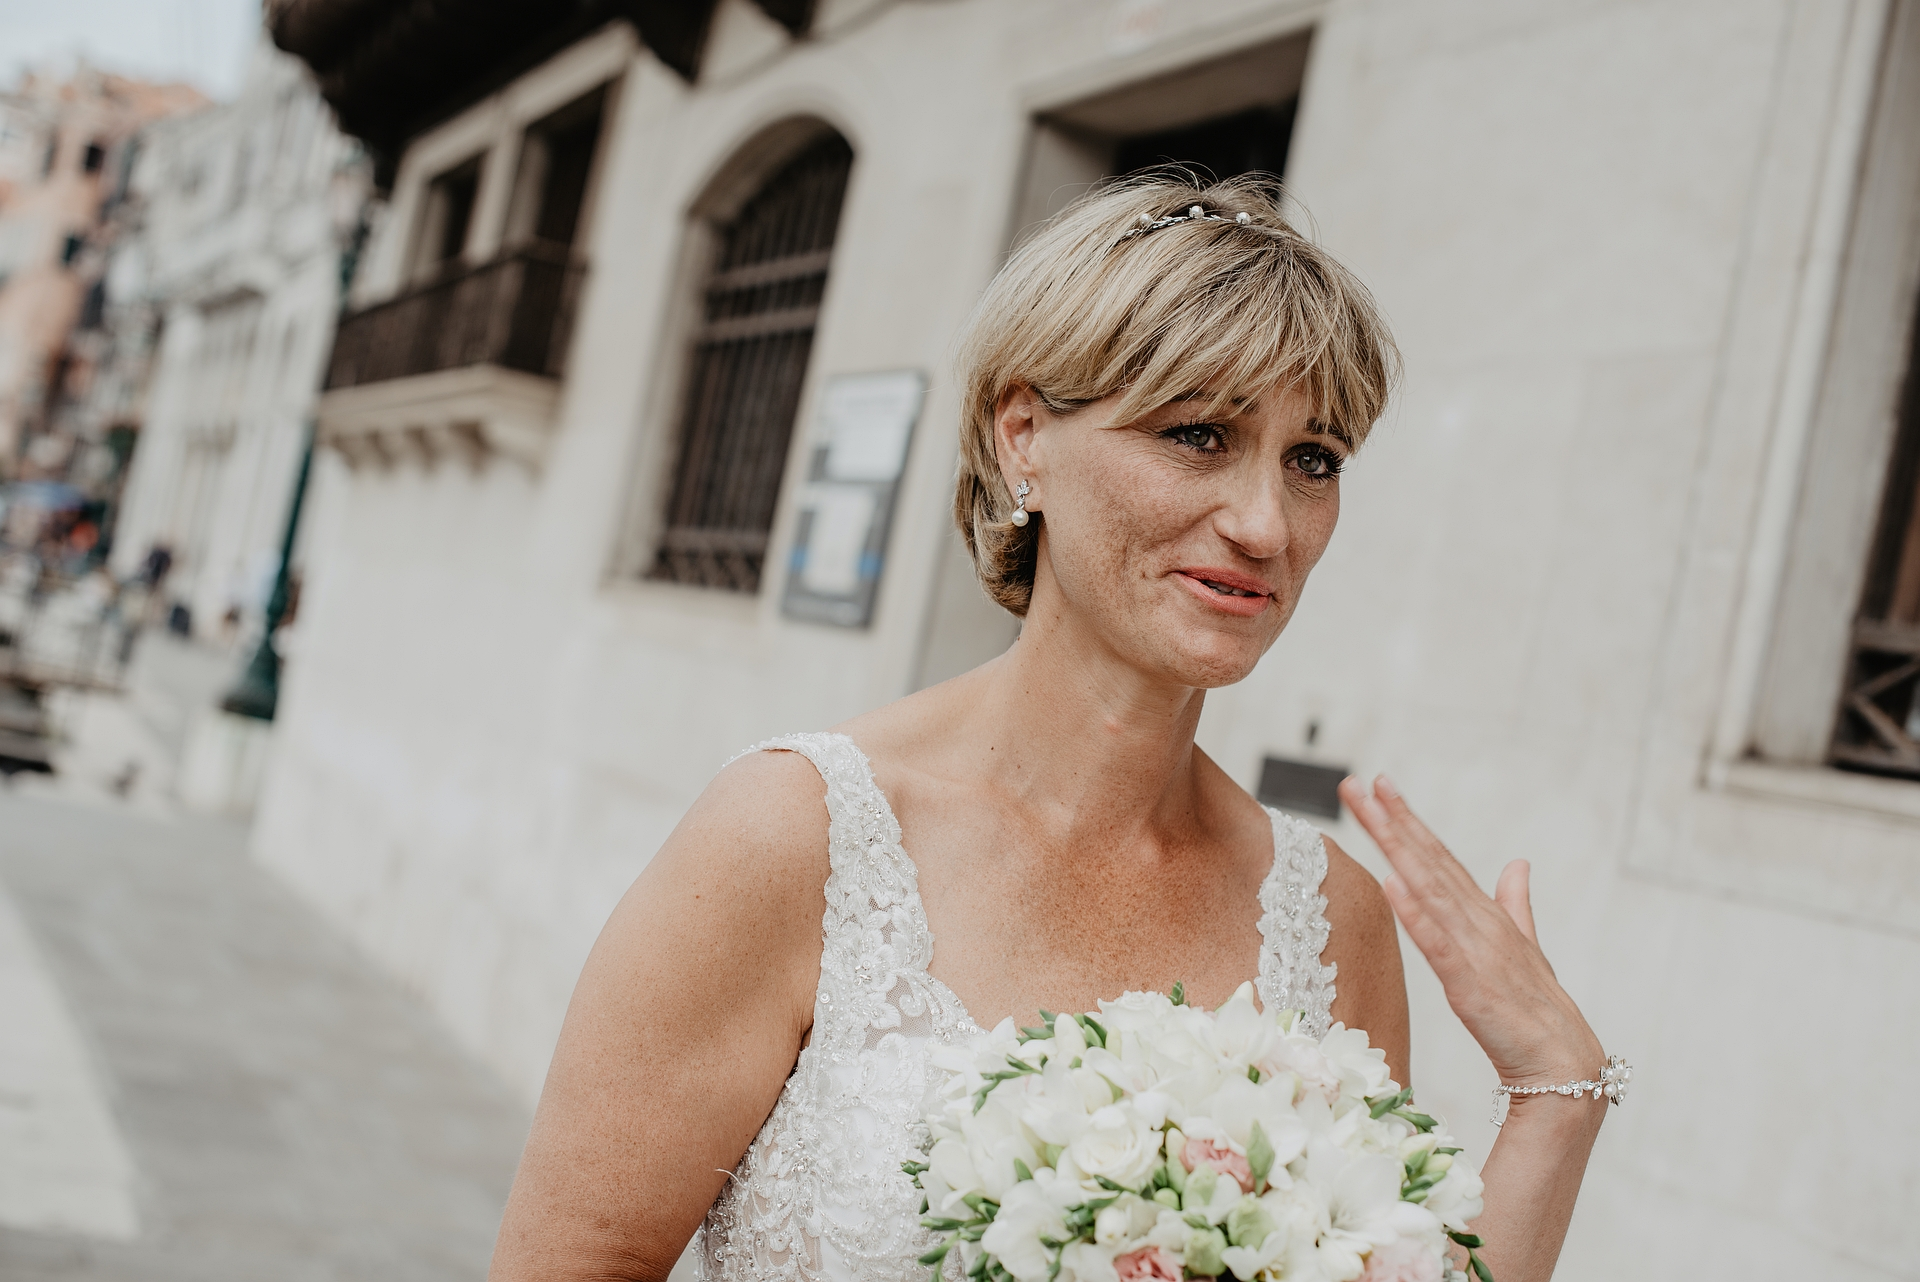 Palazzo Cavalli, Venezia, Italy Elopement Photos | The beautiful bride is excited about her wedding